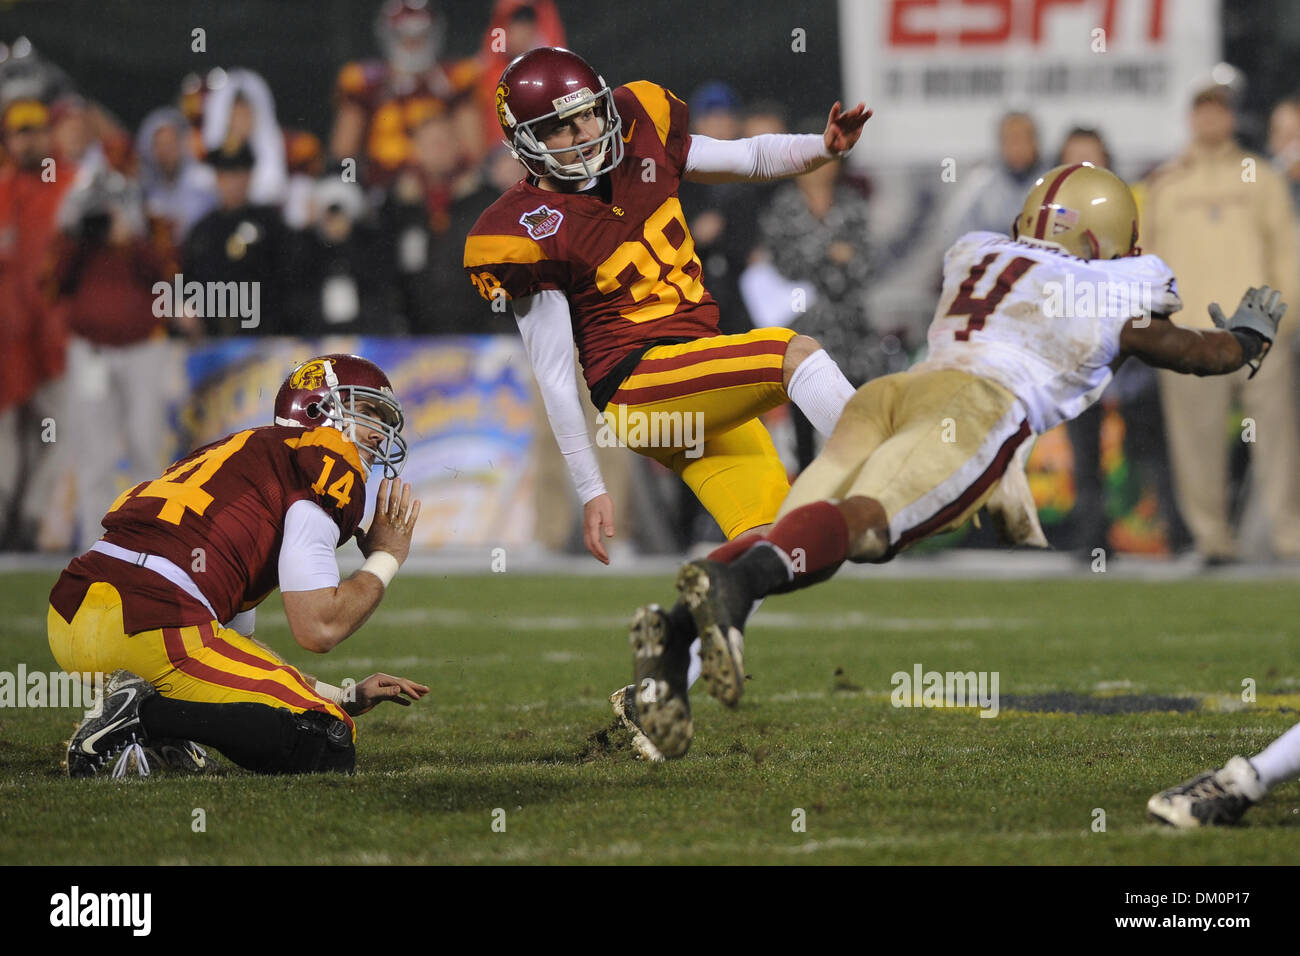 Dec. 26, 2009 - San Francisco, California, U.S - 26 December 2009:Boston College SO CB Donnie Fletcher (4) dives as USC SR PK Jordan Congdon (38) misses a field goal during the Emerald Bowl contest between USC and Boston College at AT&T Park in San Francisco, CA.  USC won 24-13. (Credit Image: © Matt Cohen/Southcreek Global/ZUMApress.com) - Stock Image